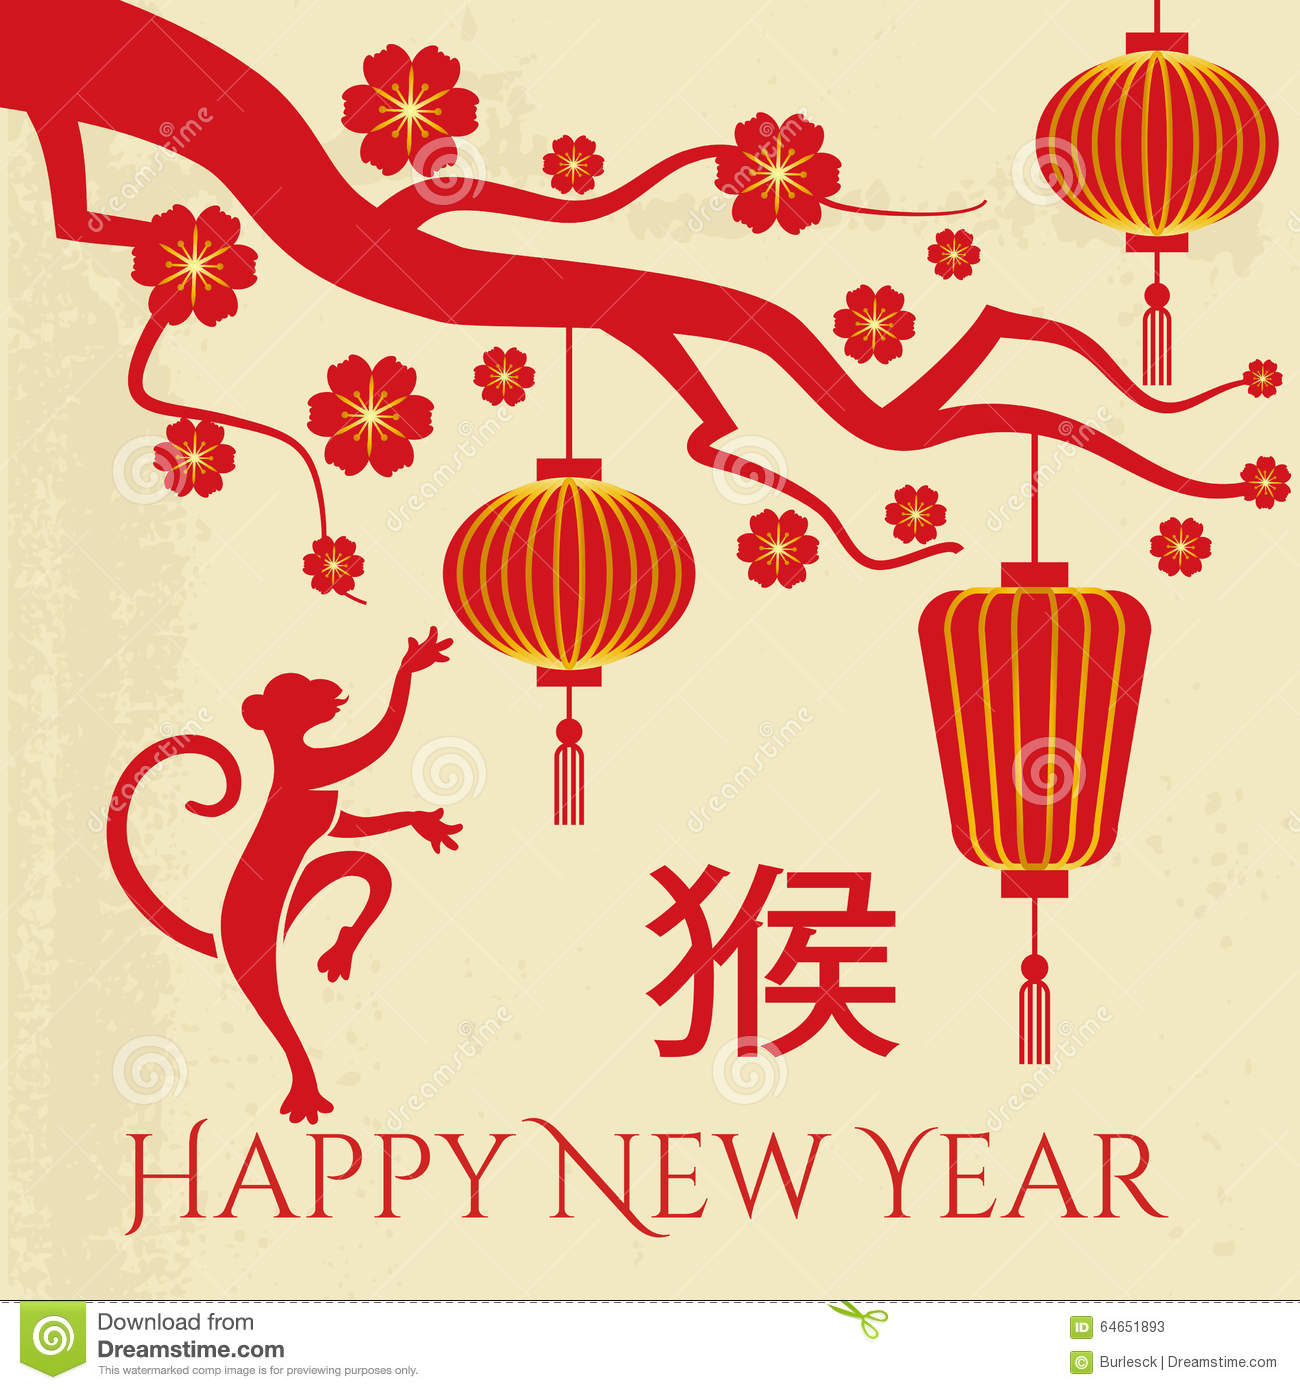 New Year Poster Template Letter Of Recommendation Sample Sample. Chinese New  Year Brochure Template.